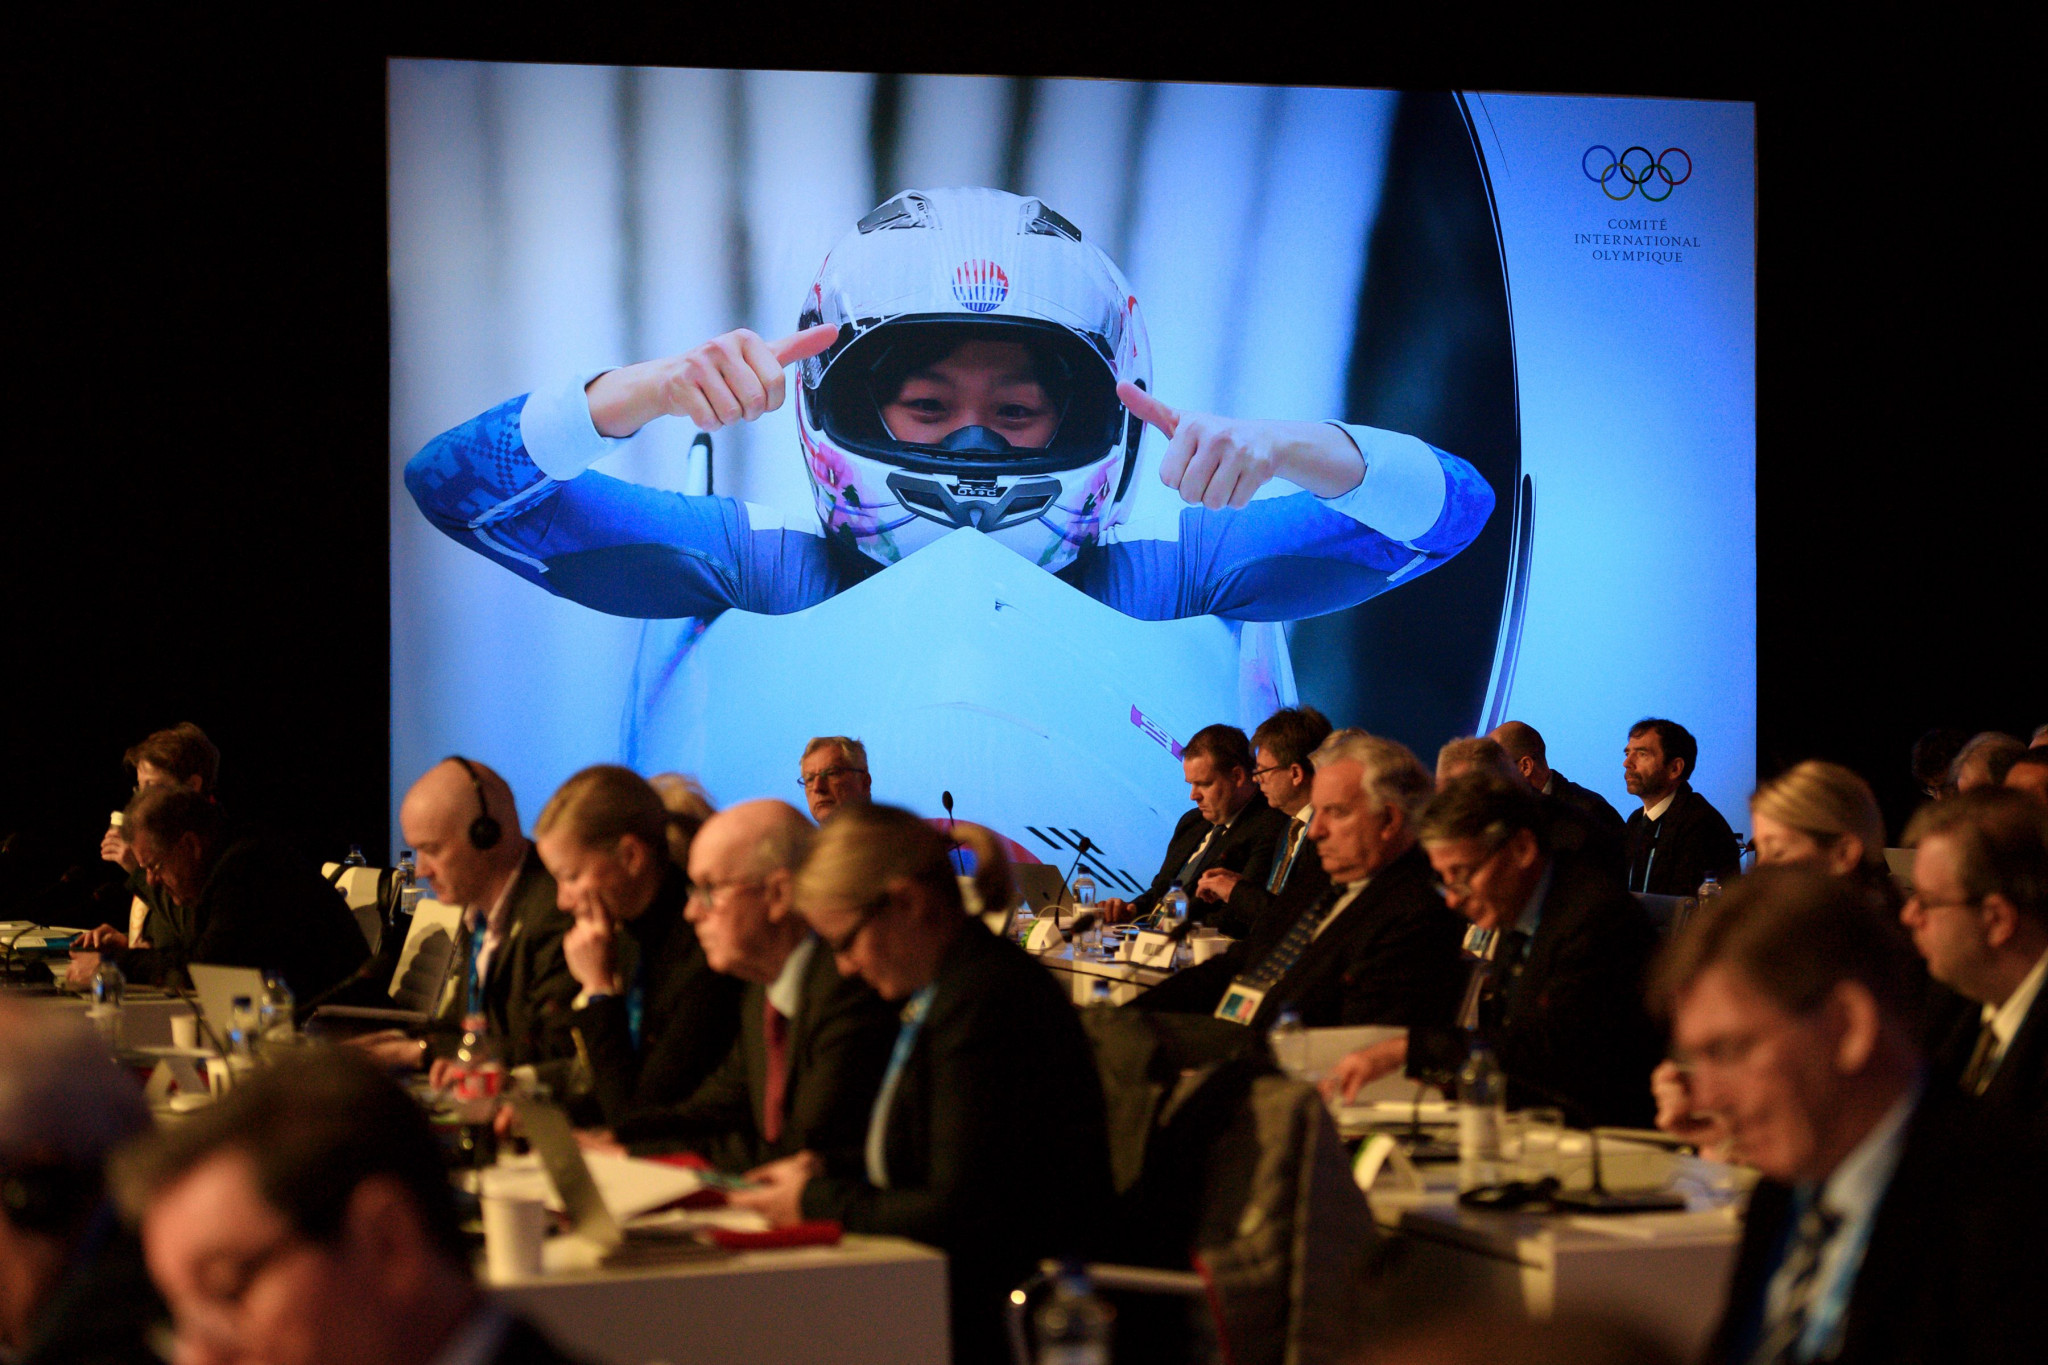 insidethegames reporting LIVE from the 132nd IOC Session in Pyeongchang